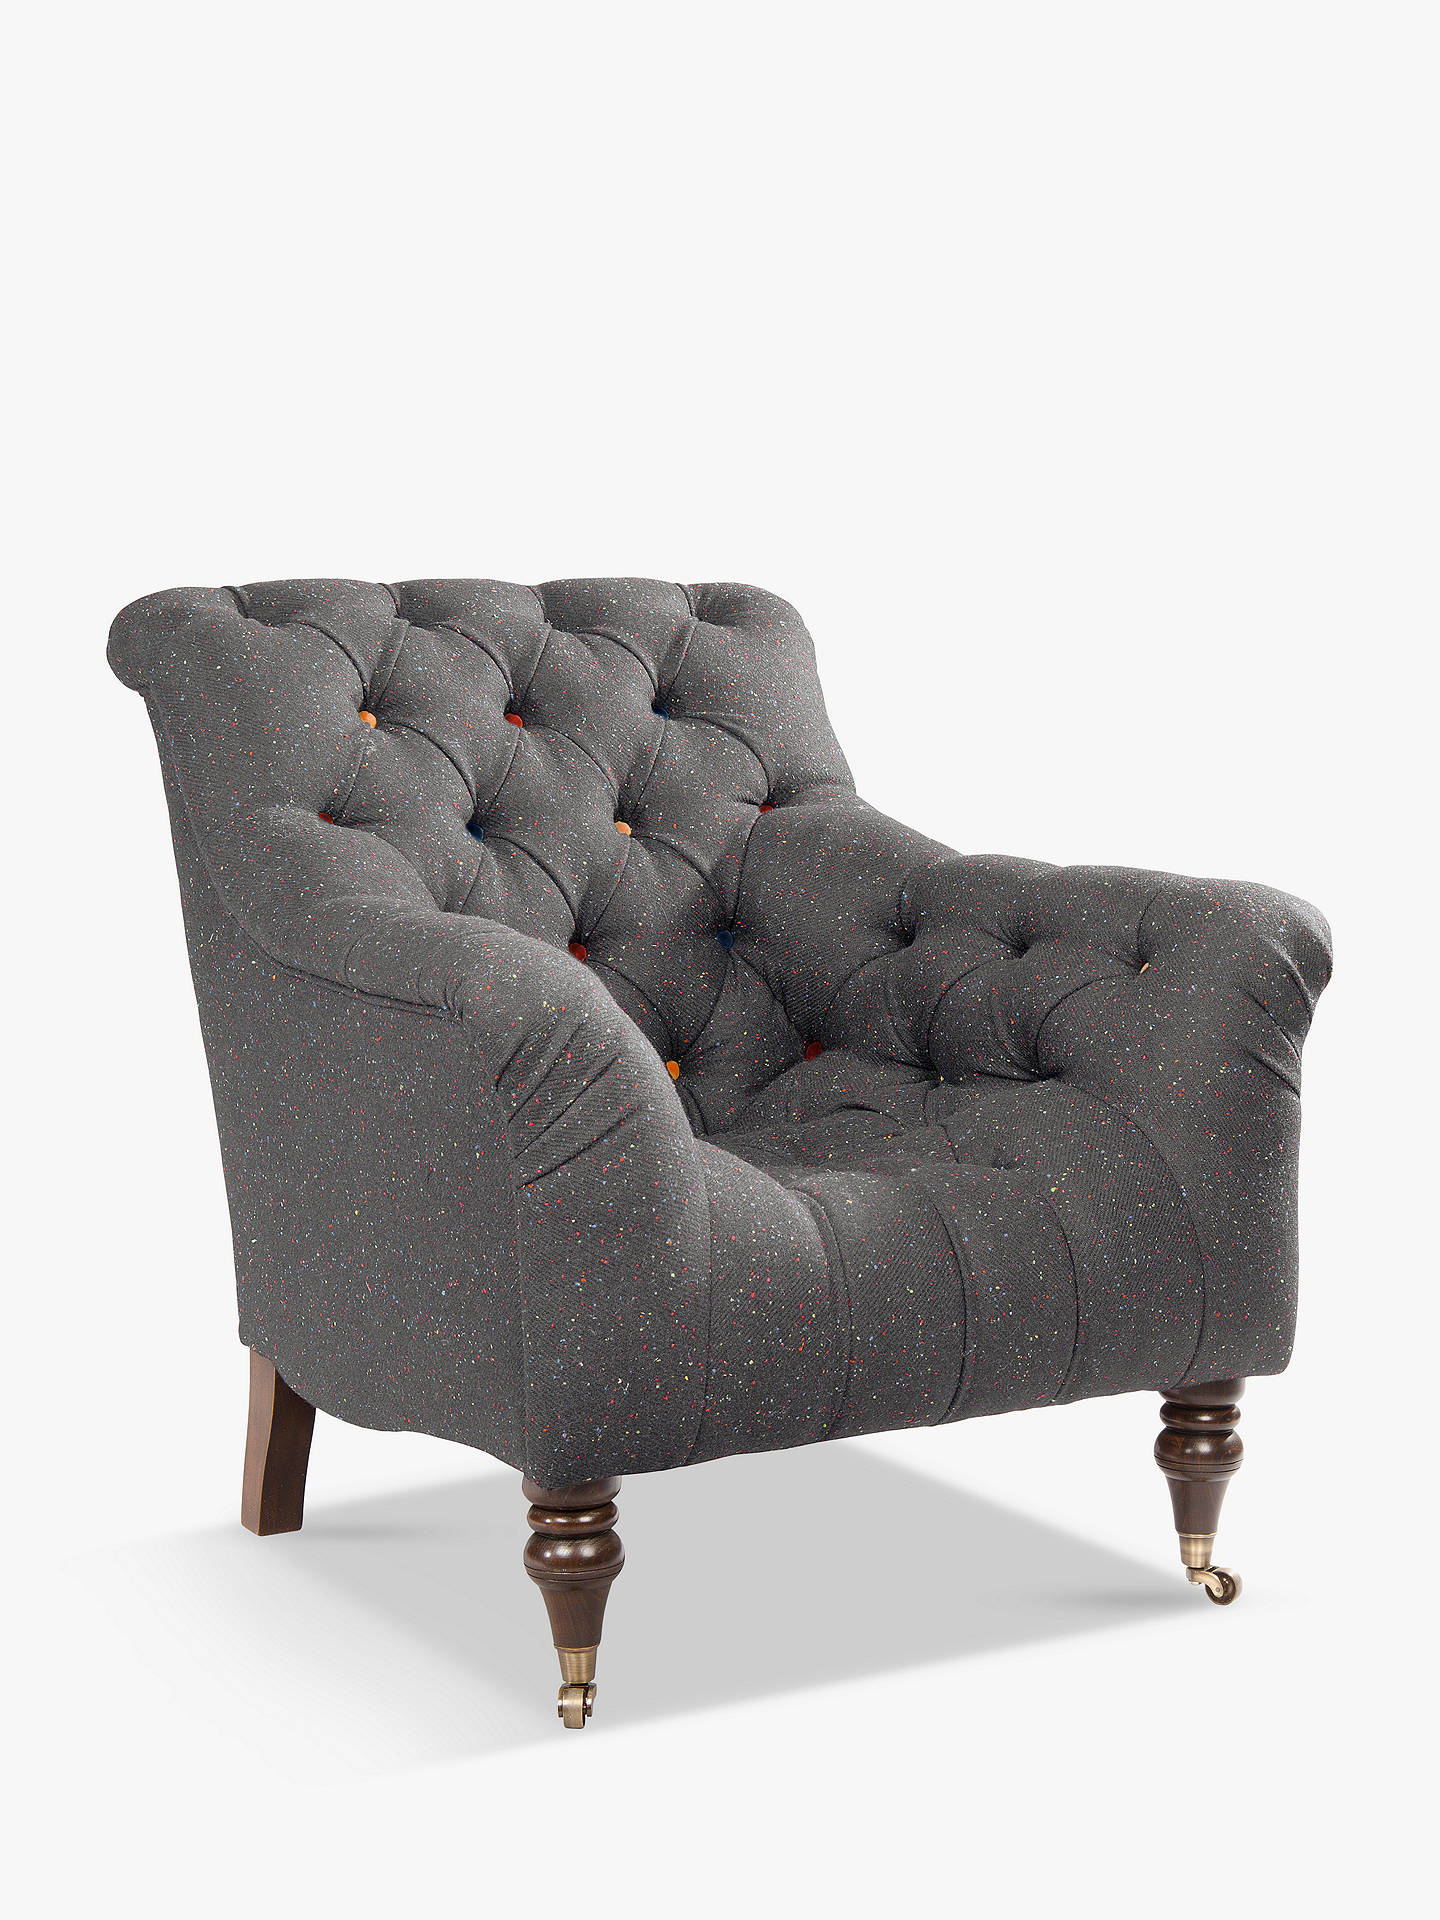 BuyTetrad Skittle Armchair, Antique Brass Castors, Harris Tweed Skye Overcast Speckle Online at johnlewis.com